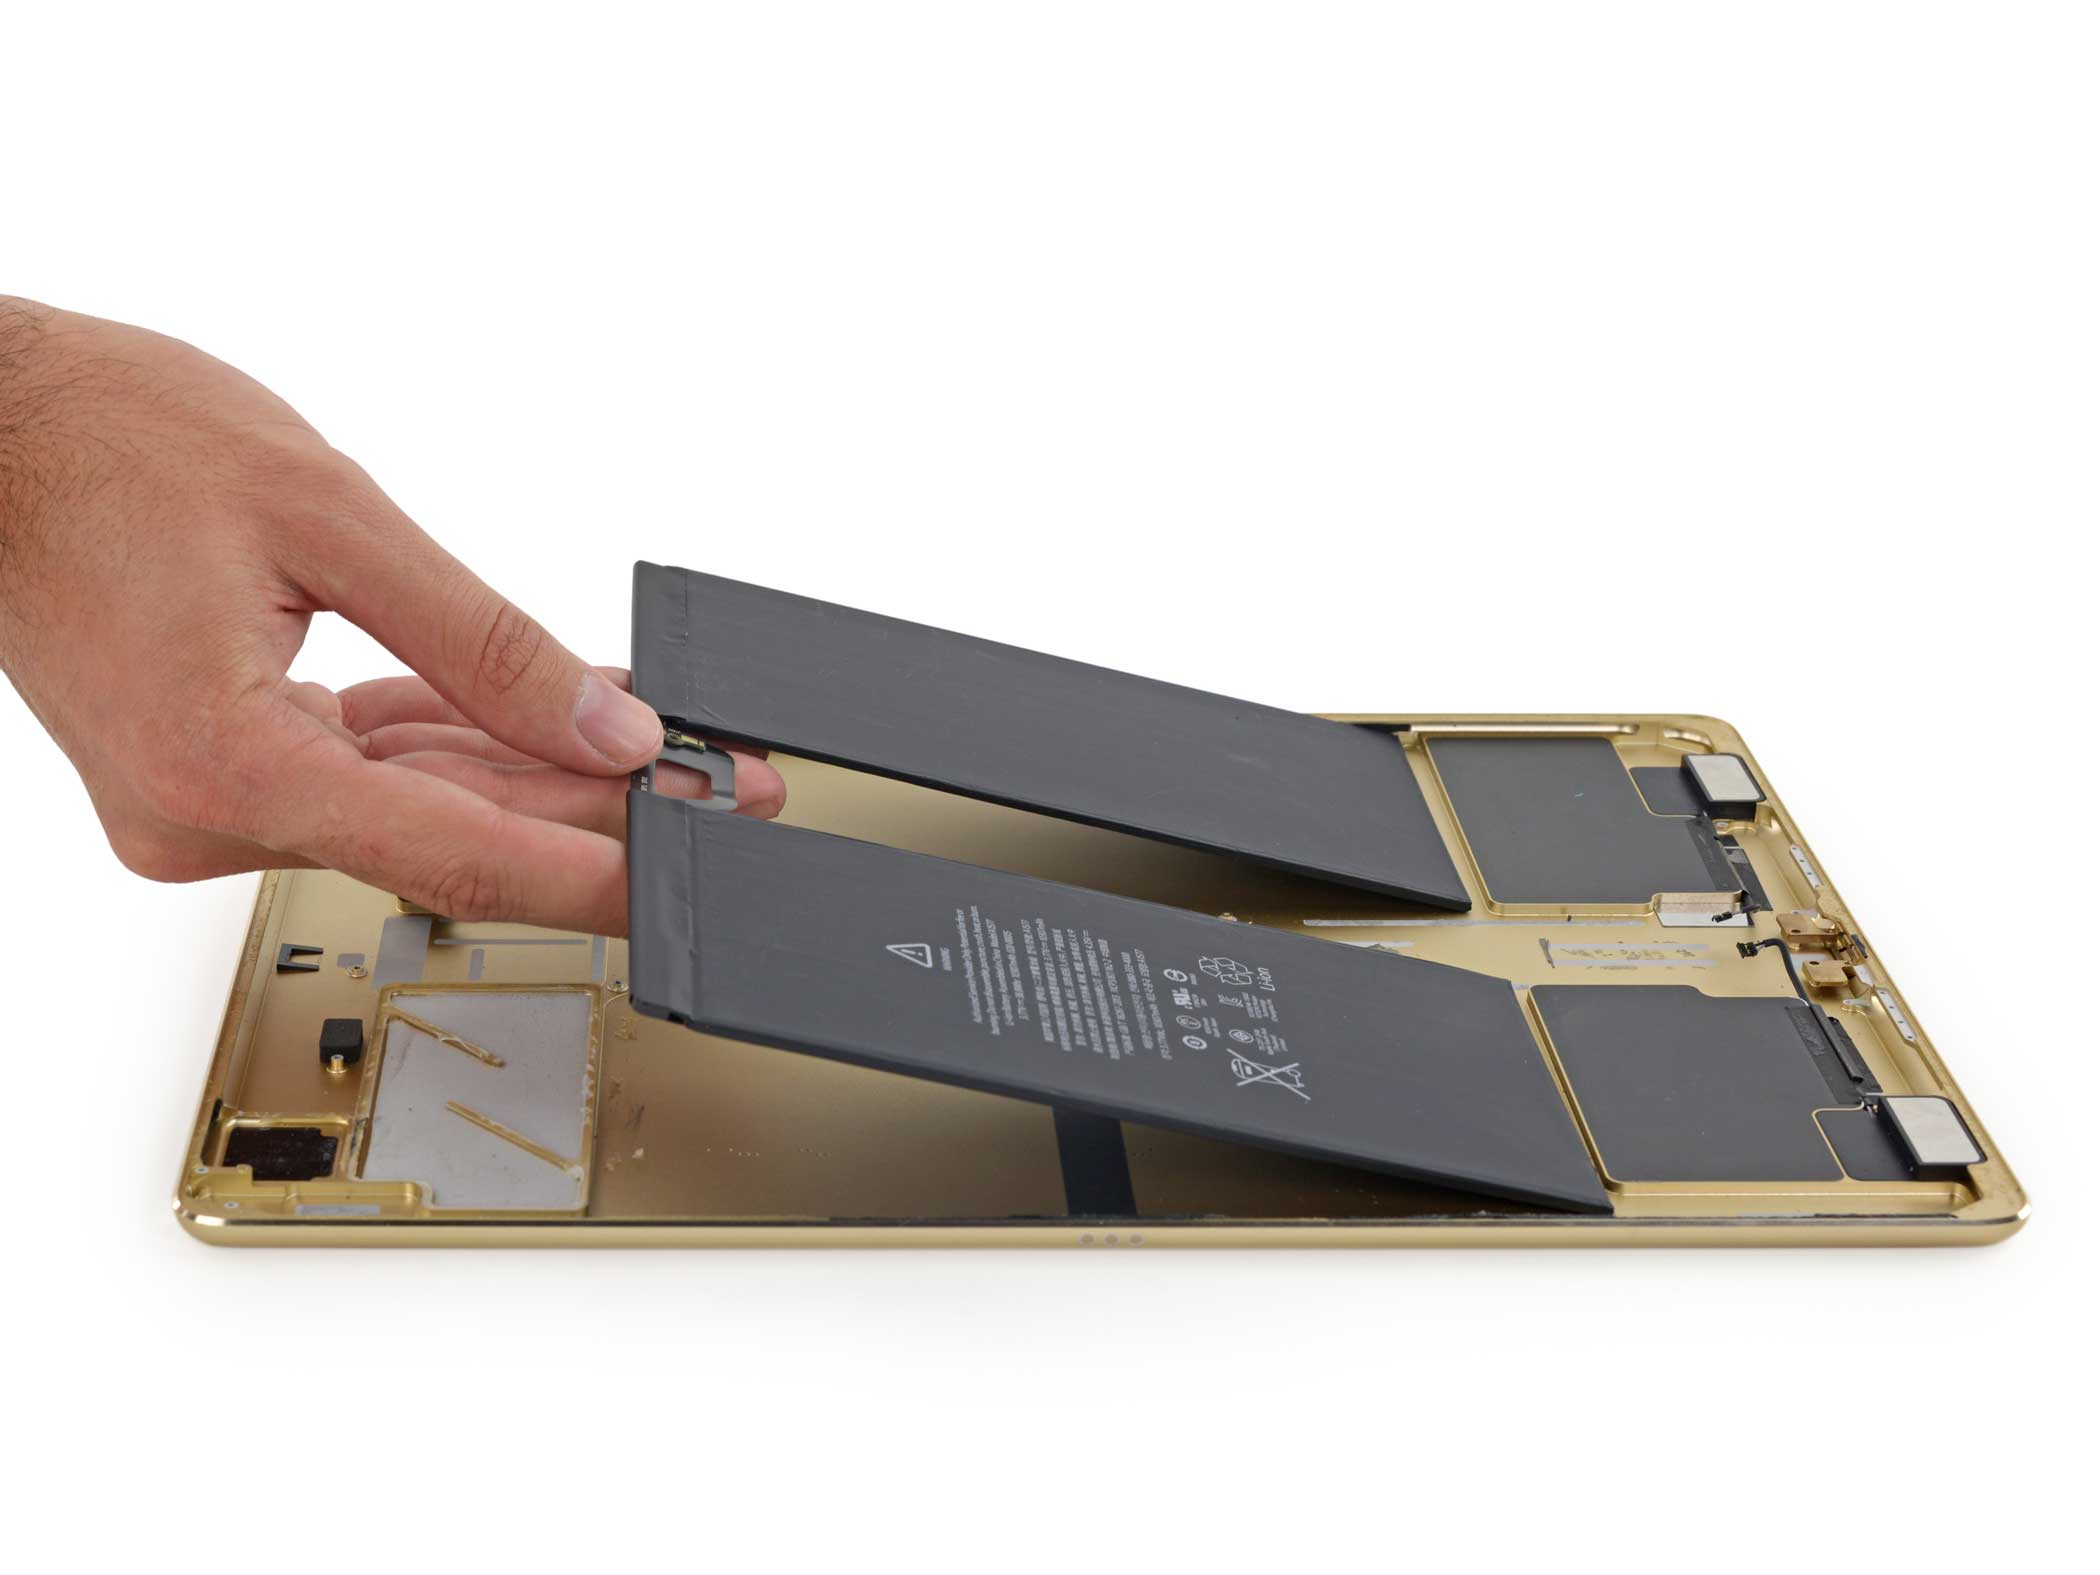 Here's a look at the iPad Pro's battery, which is 10,307 mAh according to iFixit.